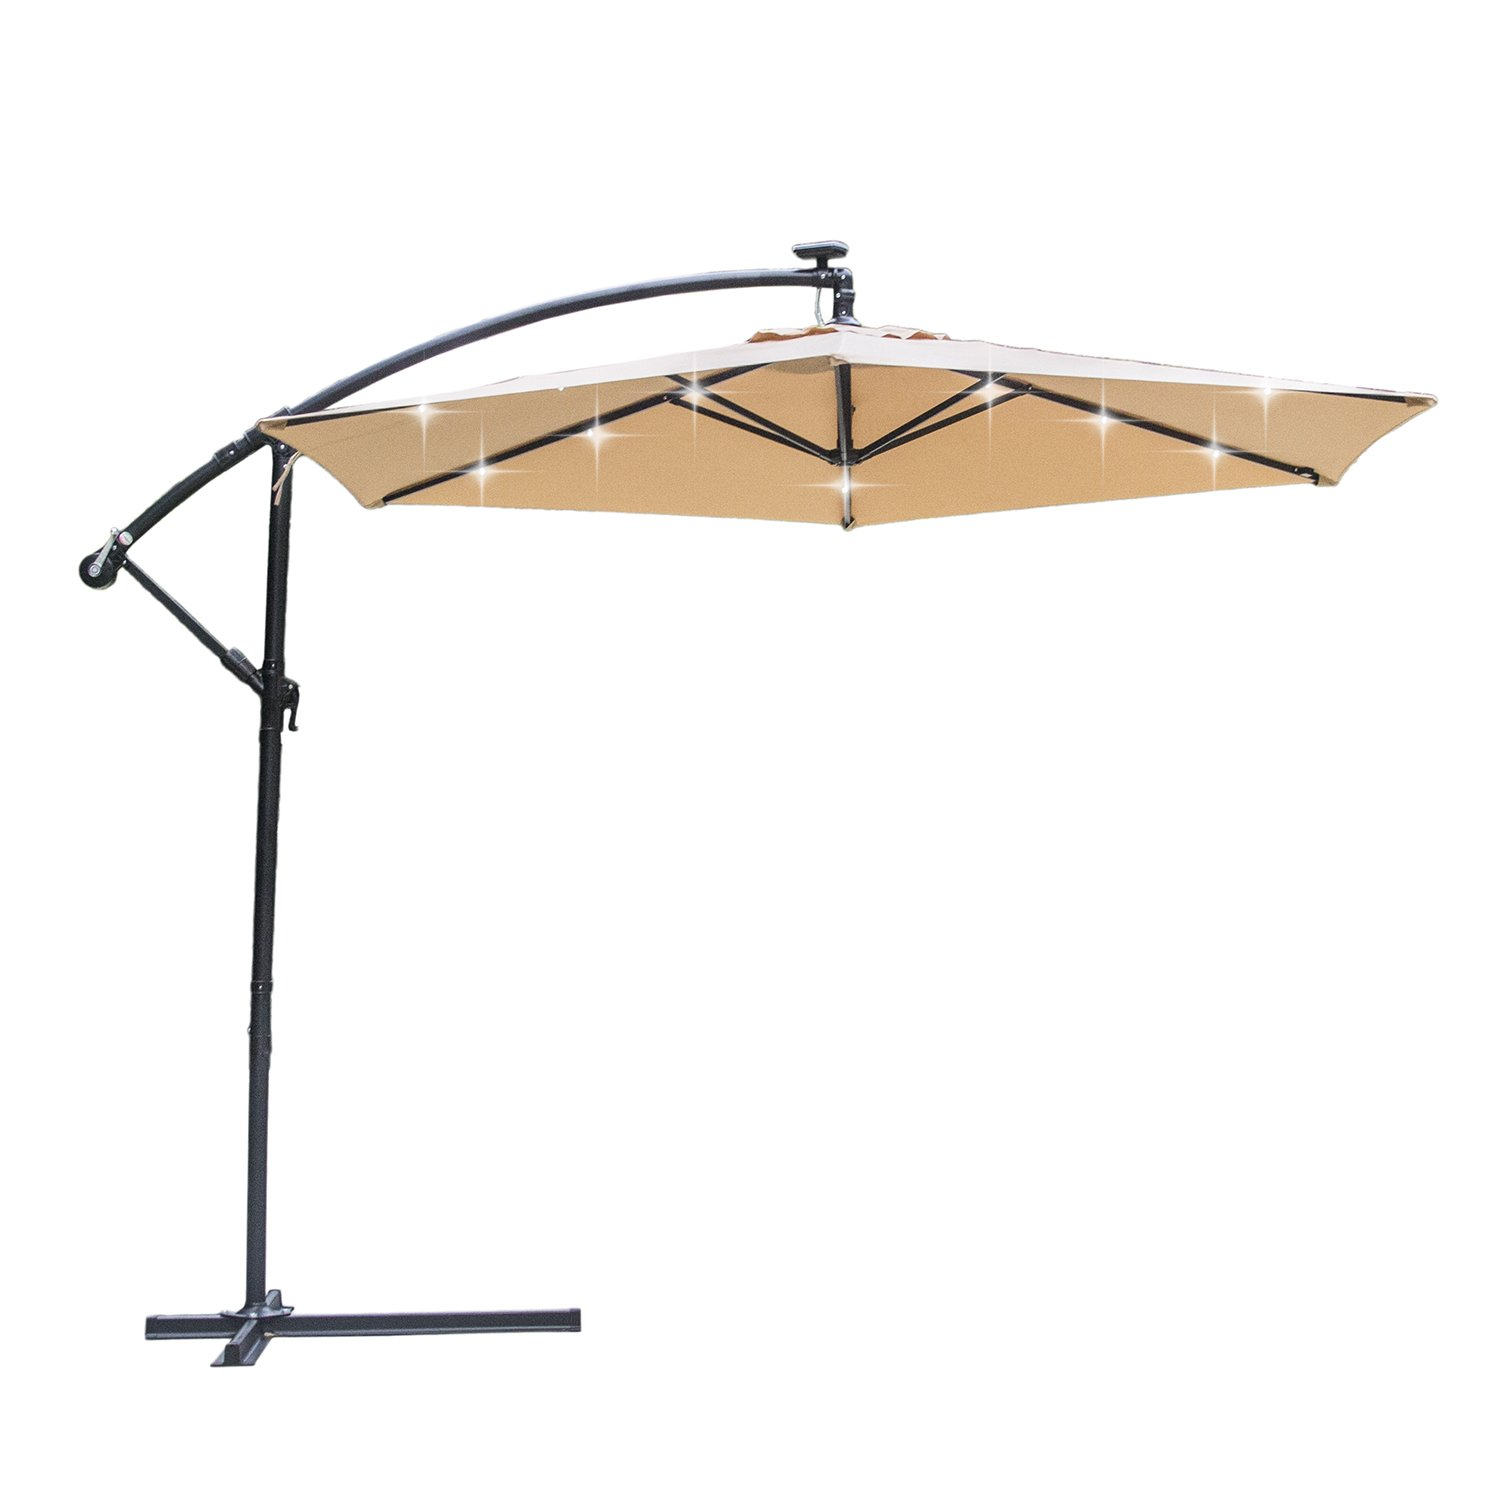 Springsun 10ft Solar LED Lights Patio Cantilever Umbrella ,Taupe